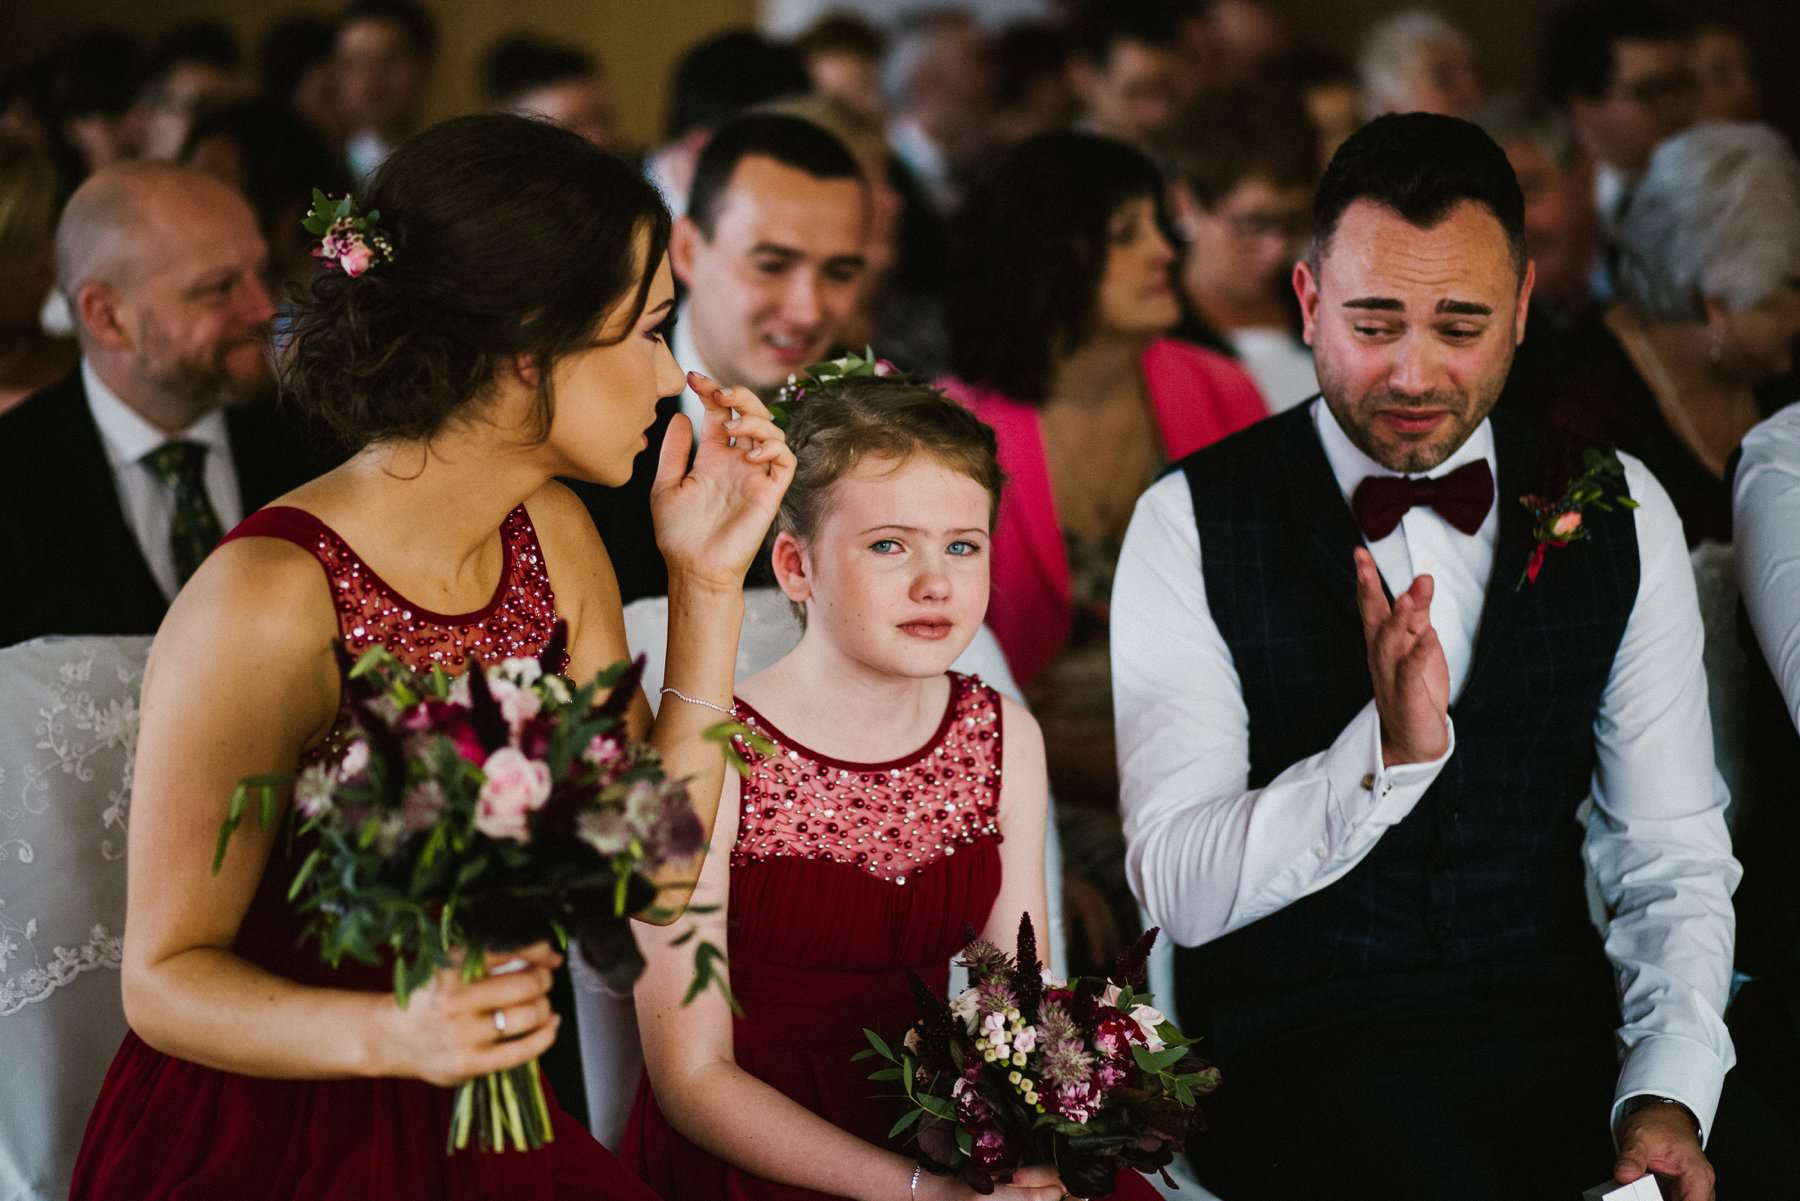 emotional wedding guests at wedding ceremony in Ballygally Castle